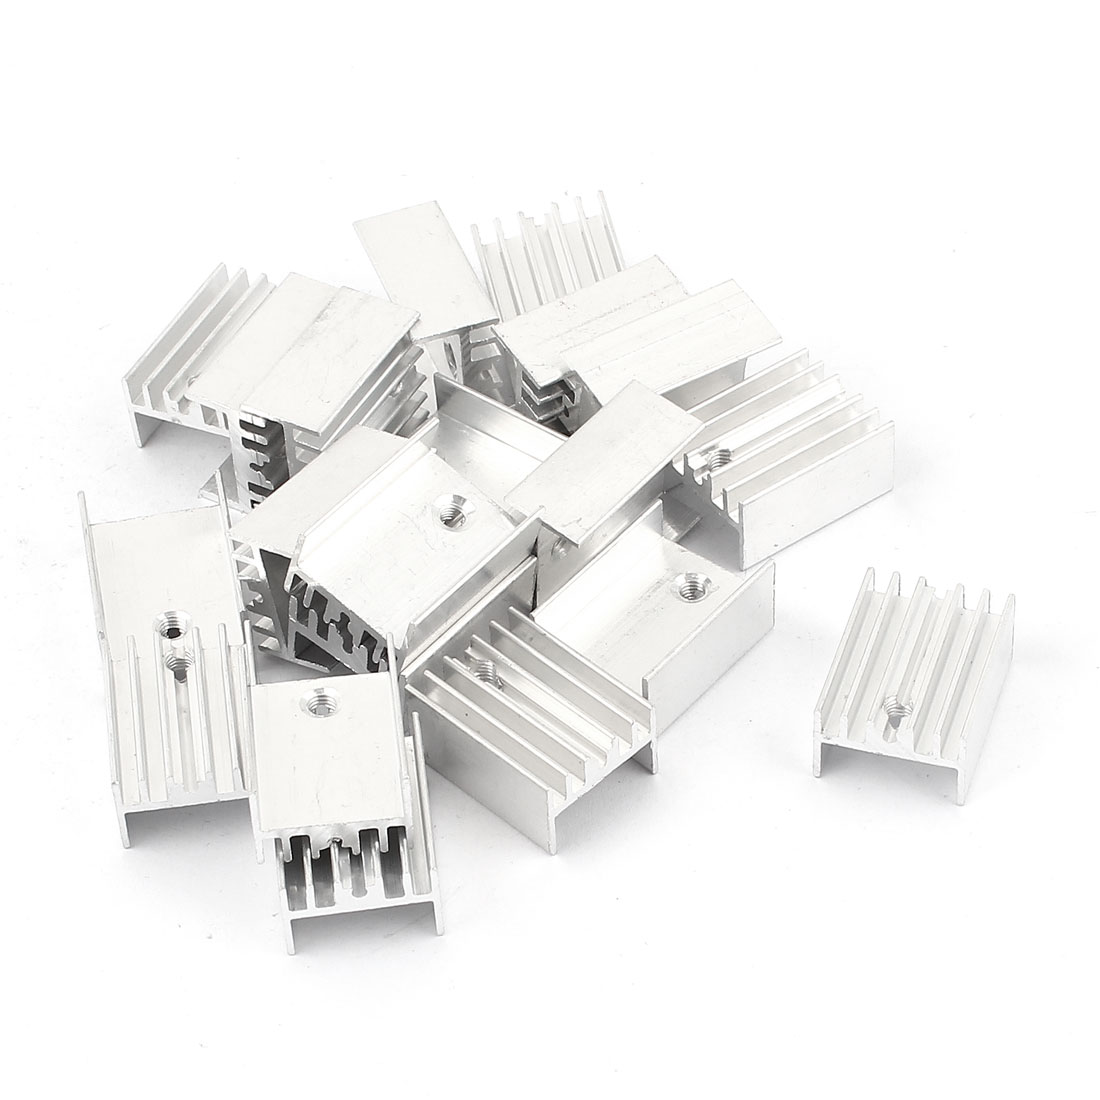 20 Pcs 2.5mm Hole Aluminium 20mmx15mmx10mm Heatsink Heat Sink Cooling Cooler Fin